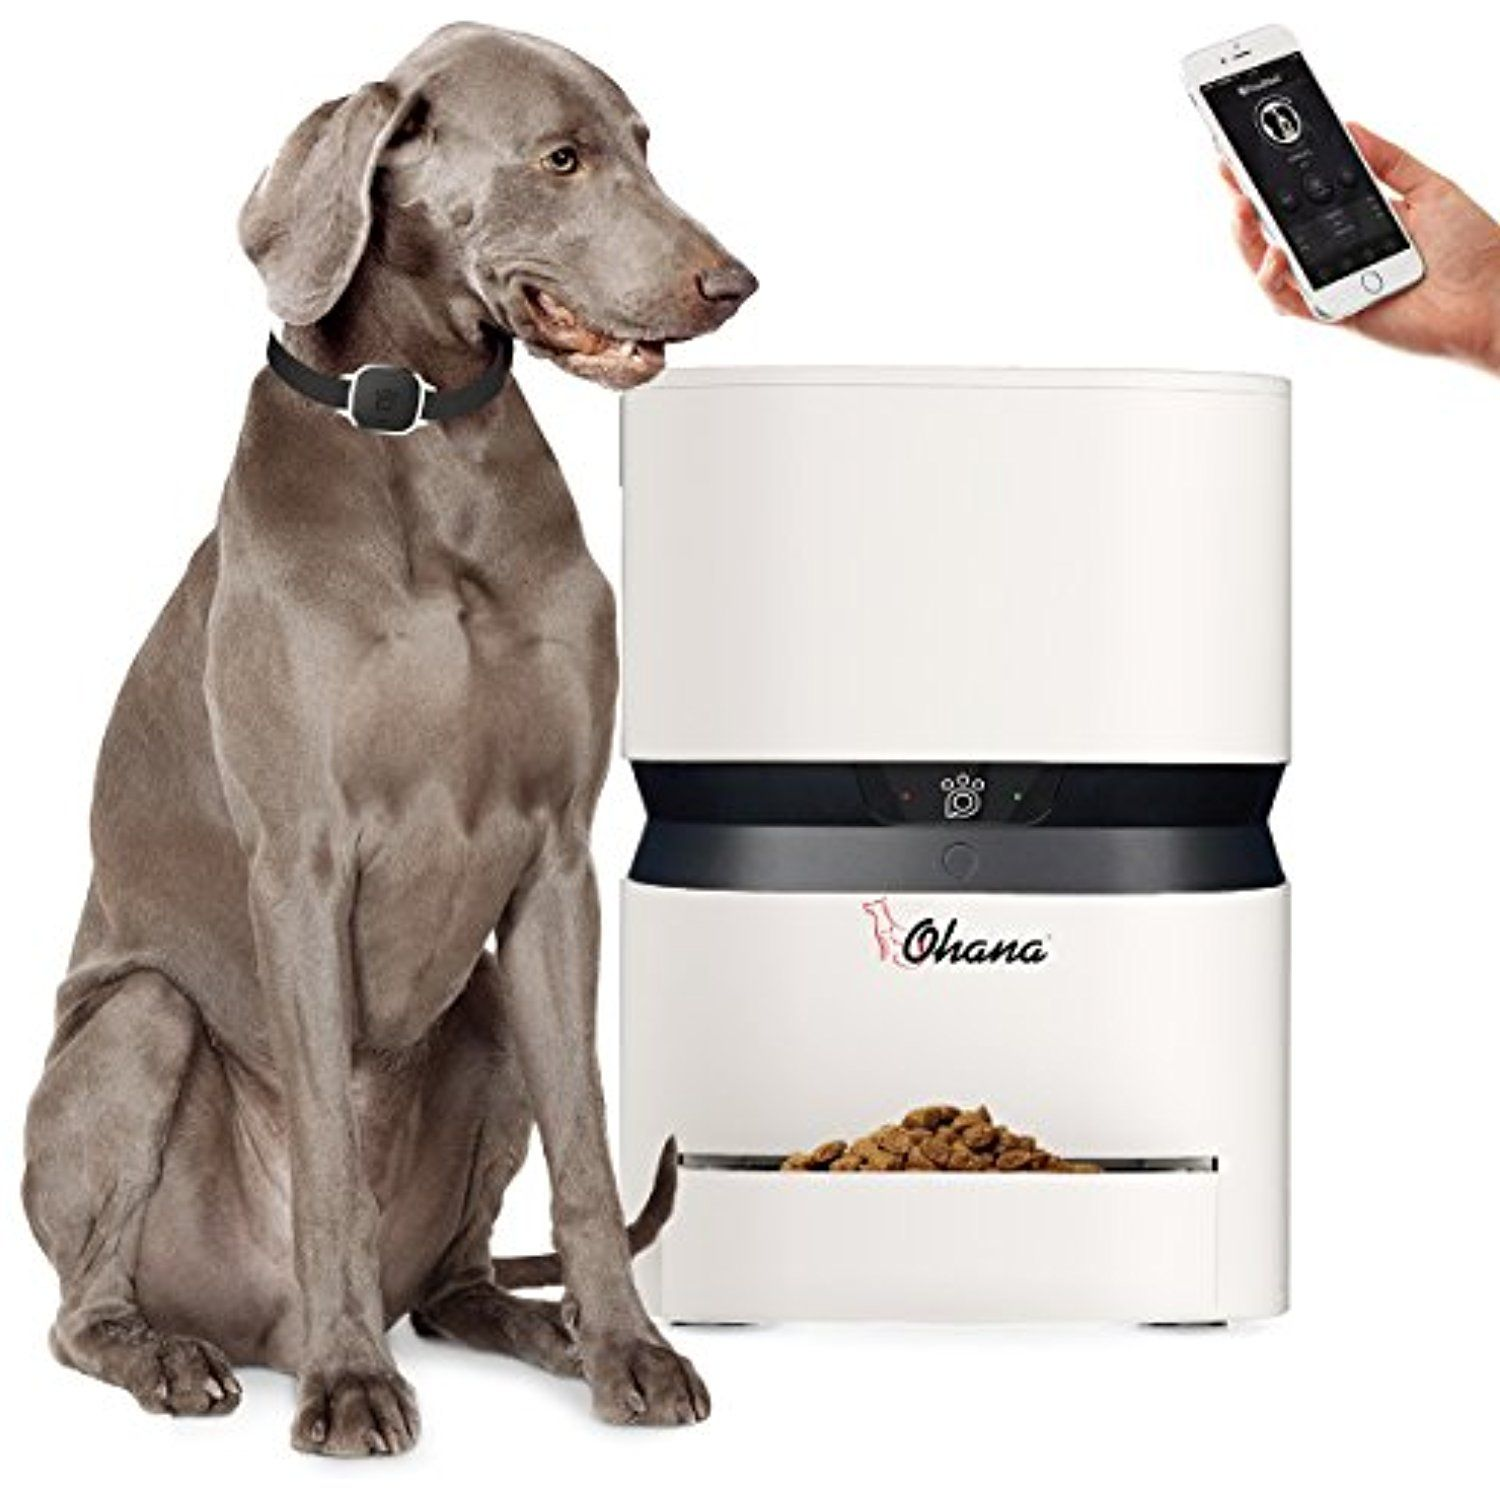 8l Smartfeeder Ohana Automatic Food Dispenser For Cats And Dogs